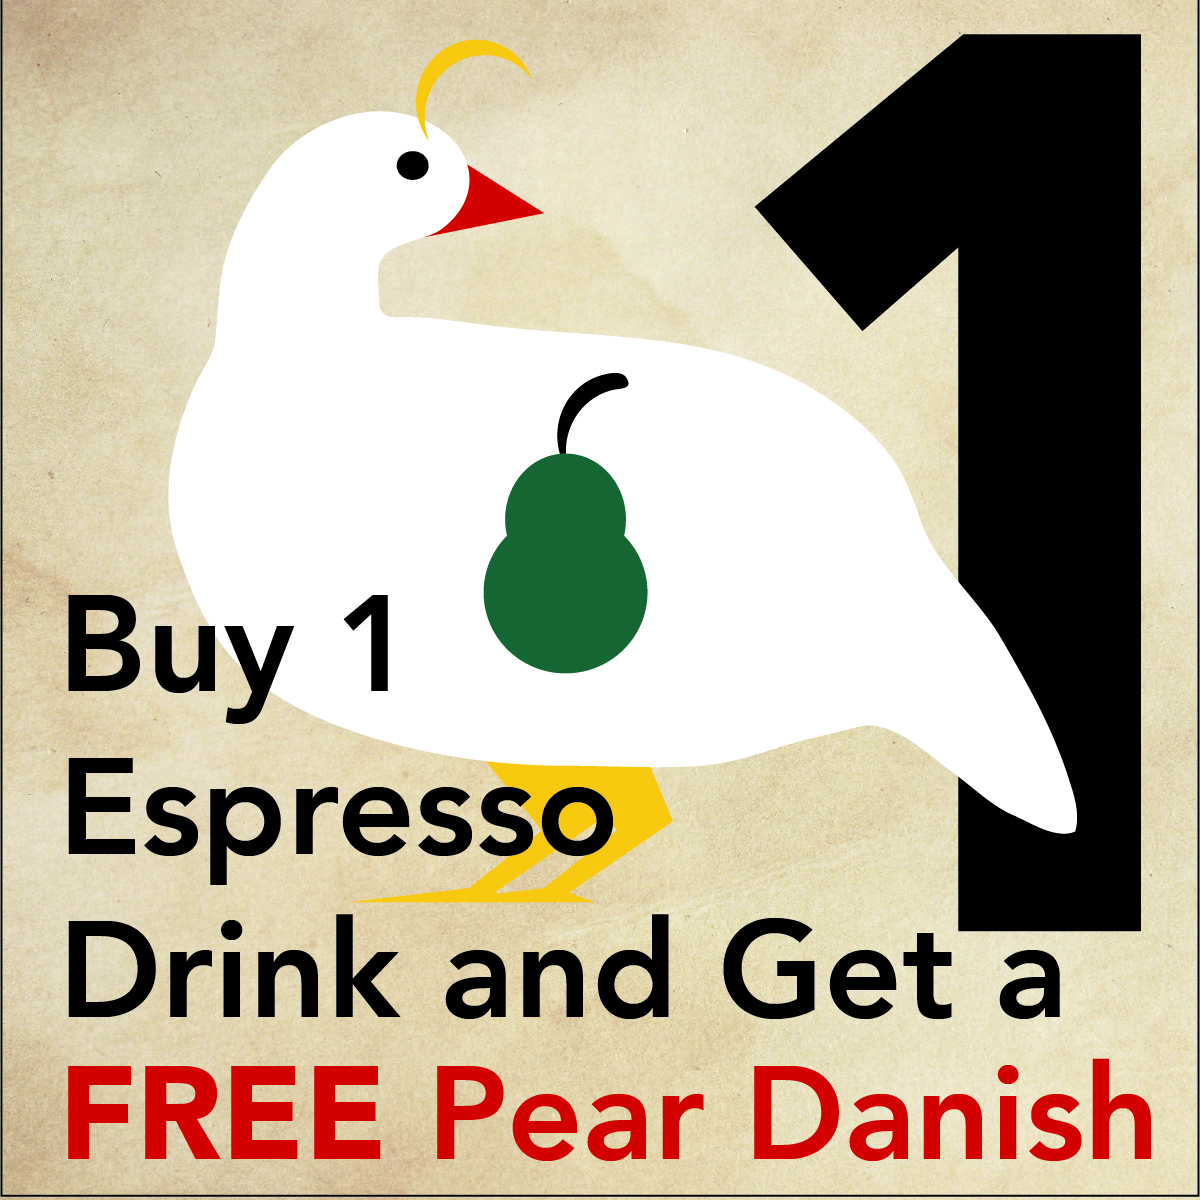 DEC 24 -  PARTRIDGE IN A PEAR TREE  Buy 1 espresso drink and get a FREE pear danish at  Vienna Coffee House  at  Regas .